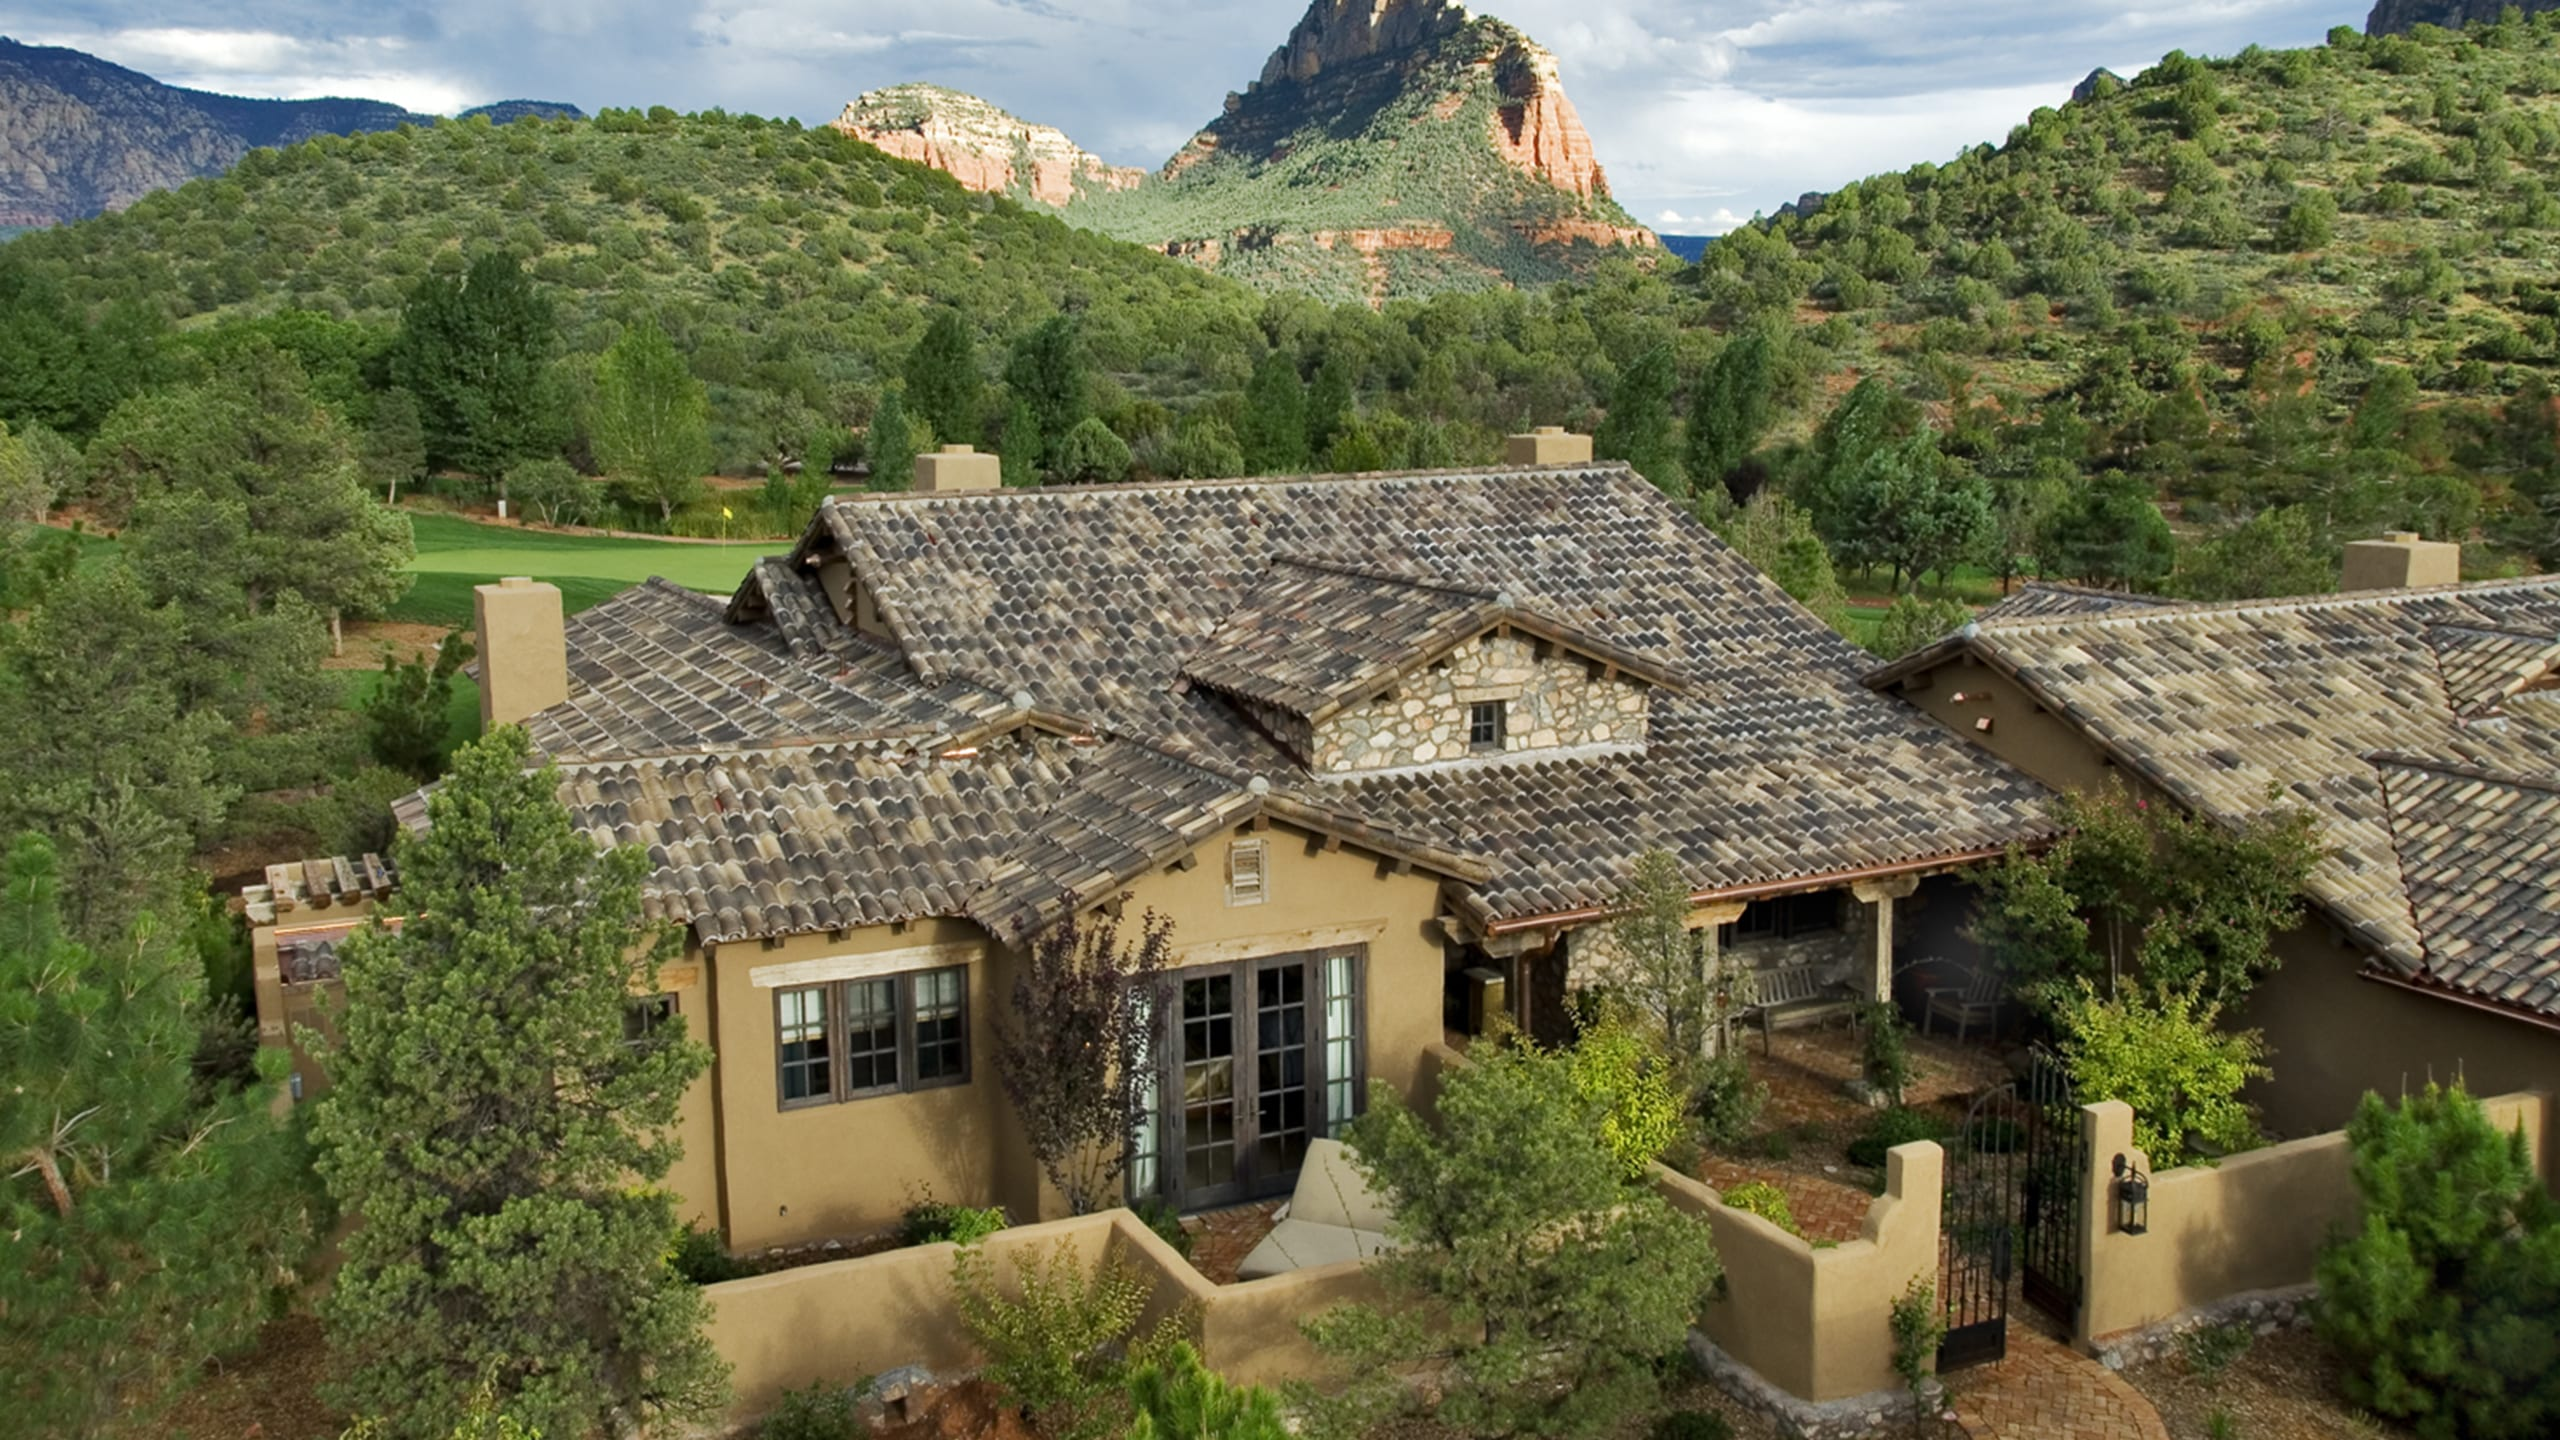 The Villas at Seven Canyons Ludowici Roof Tile